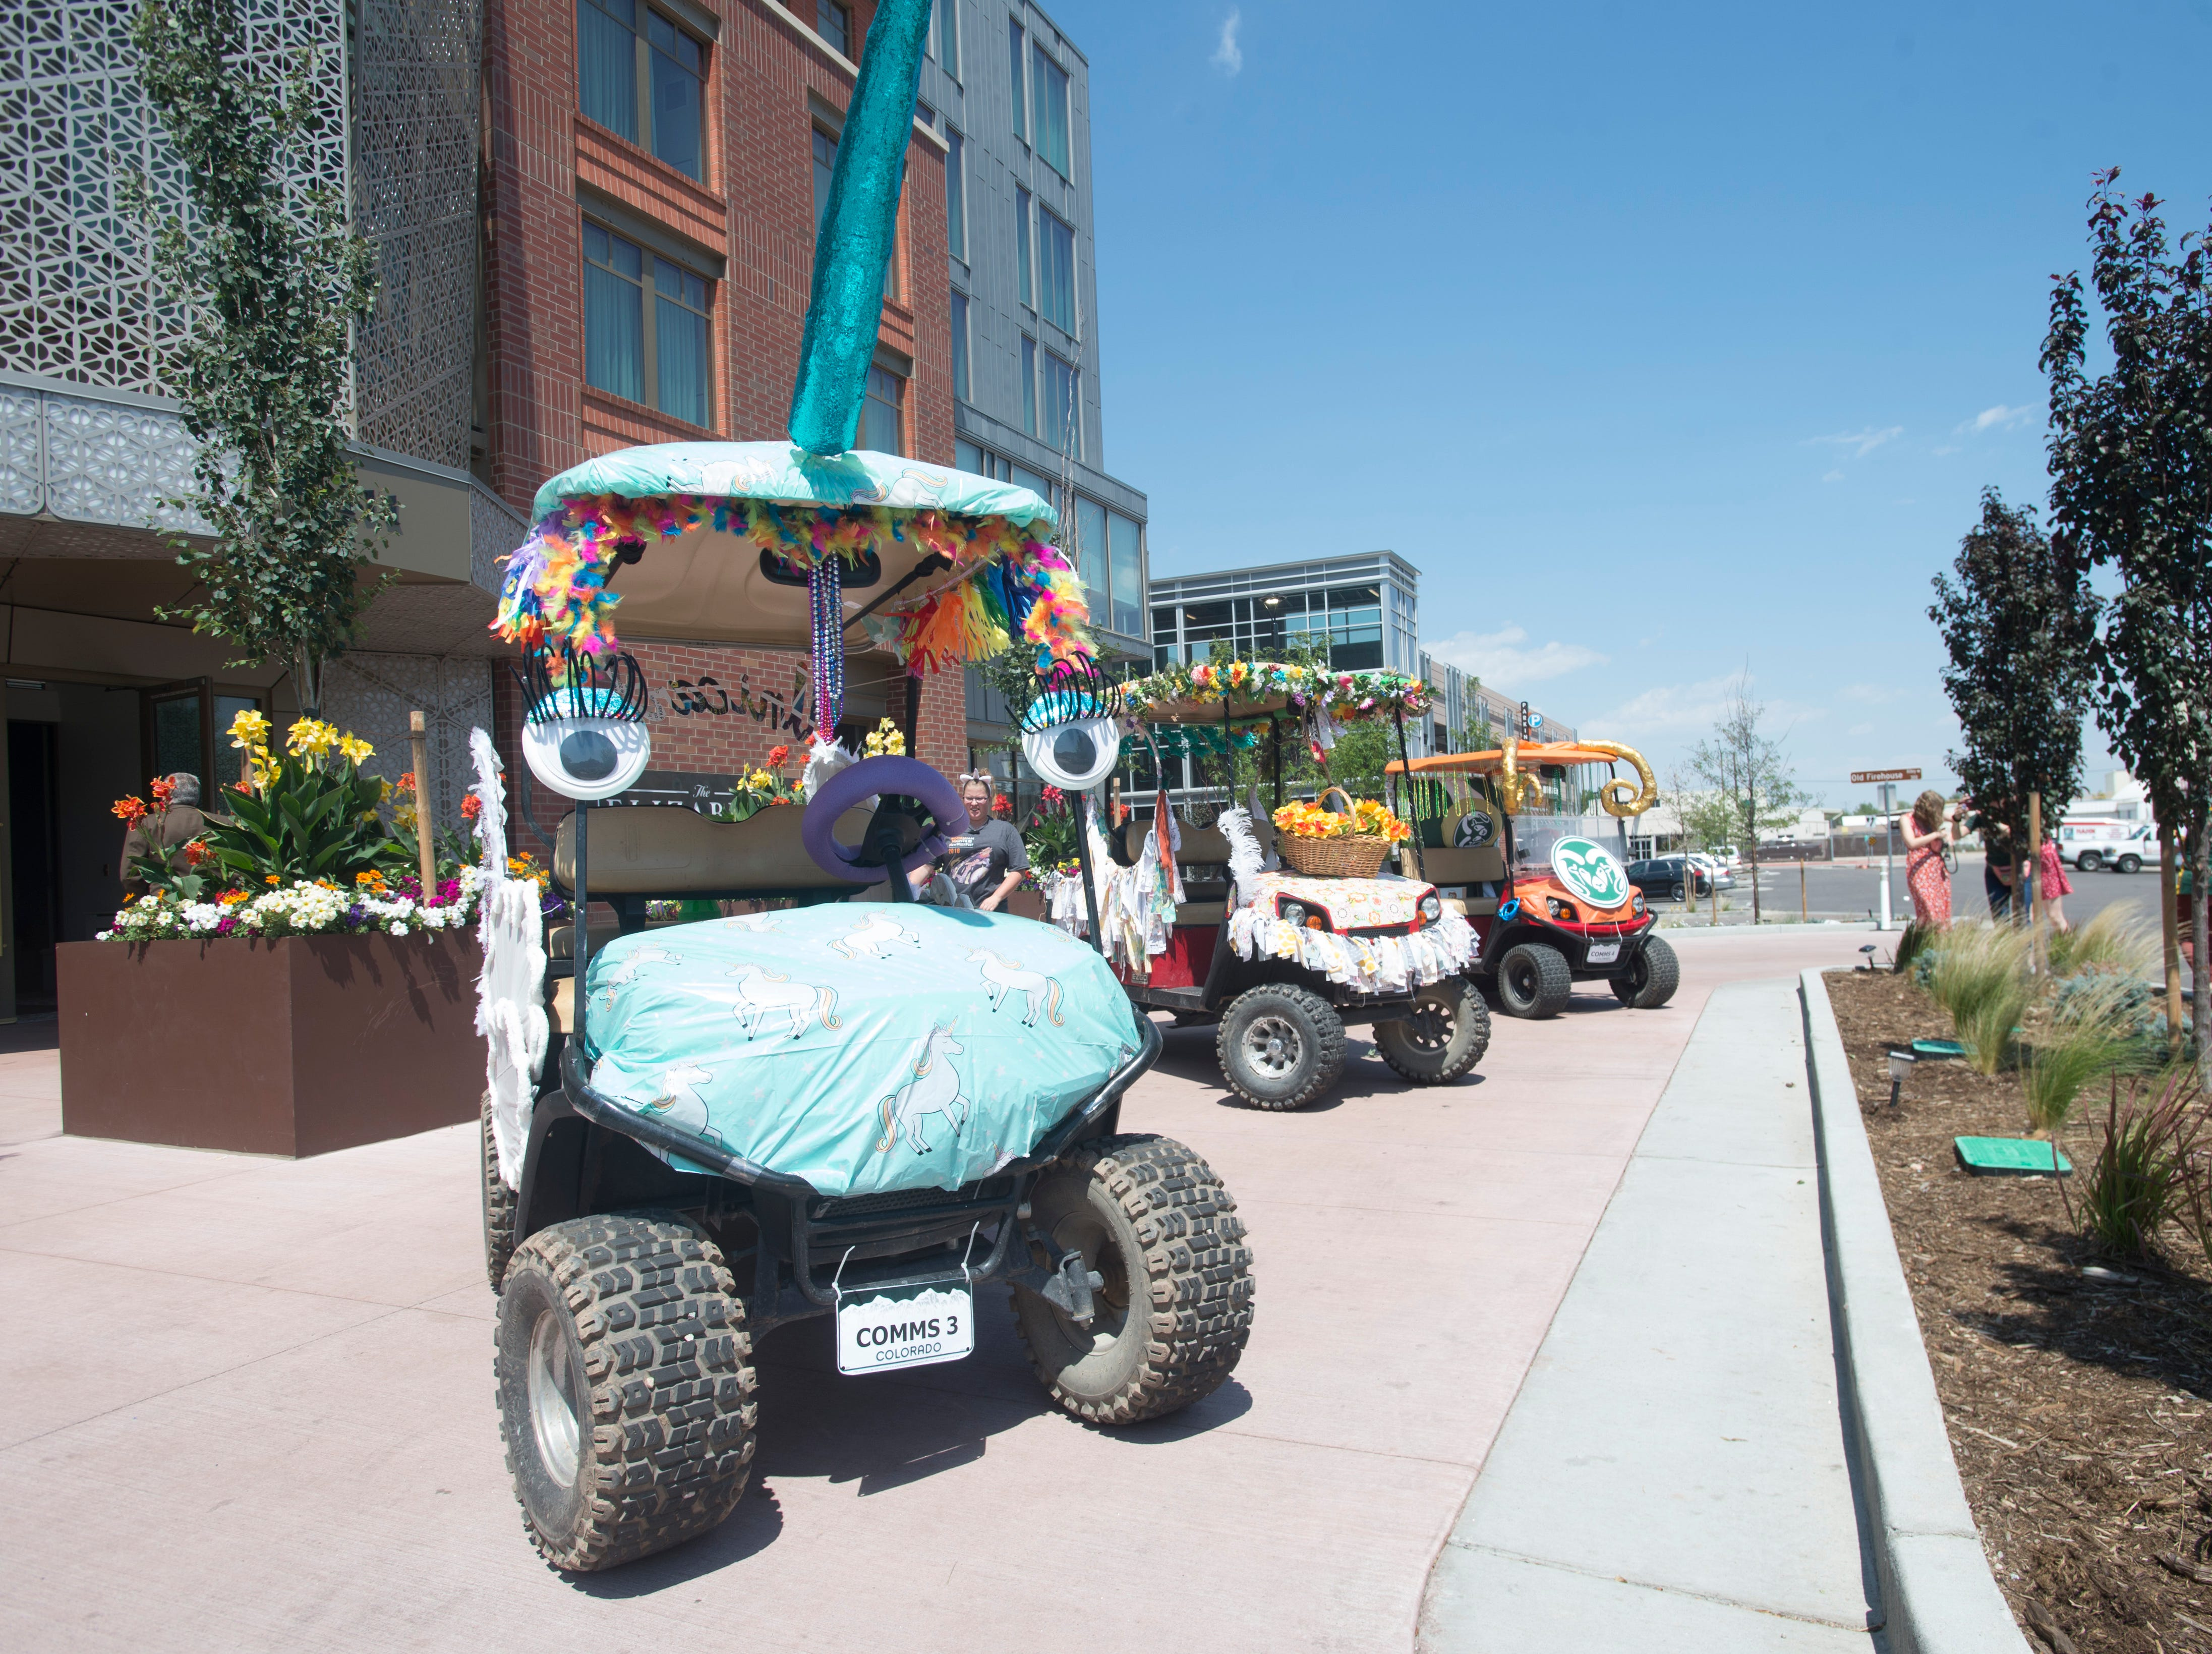 Golf Cart 1: Vote for your favorite NewWestFest decorated golf cart.